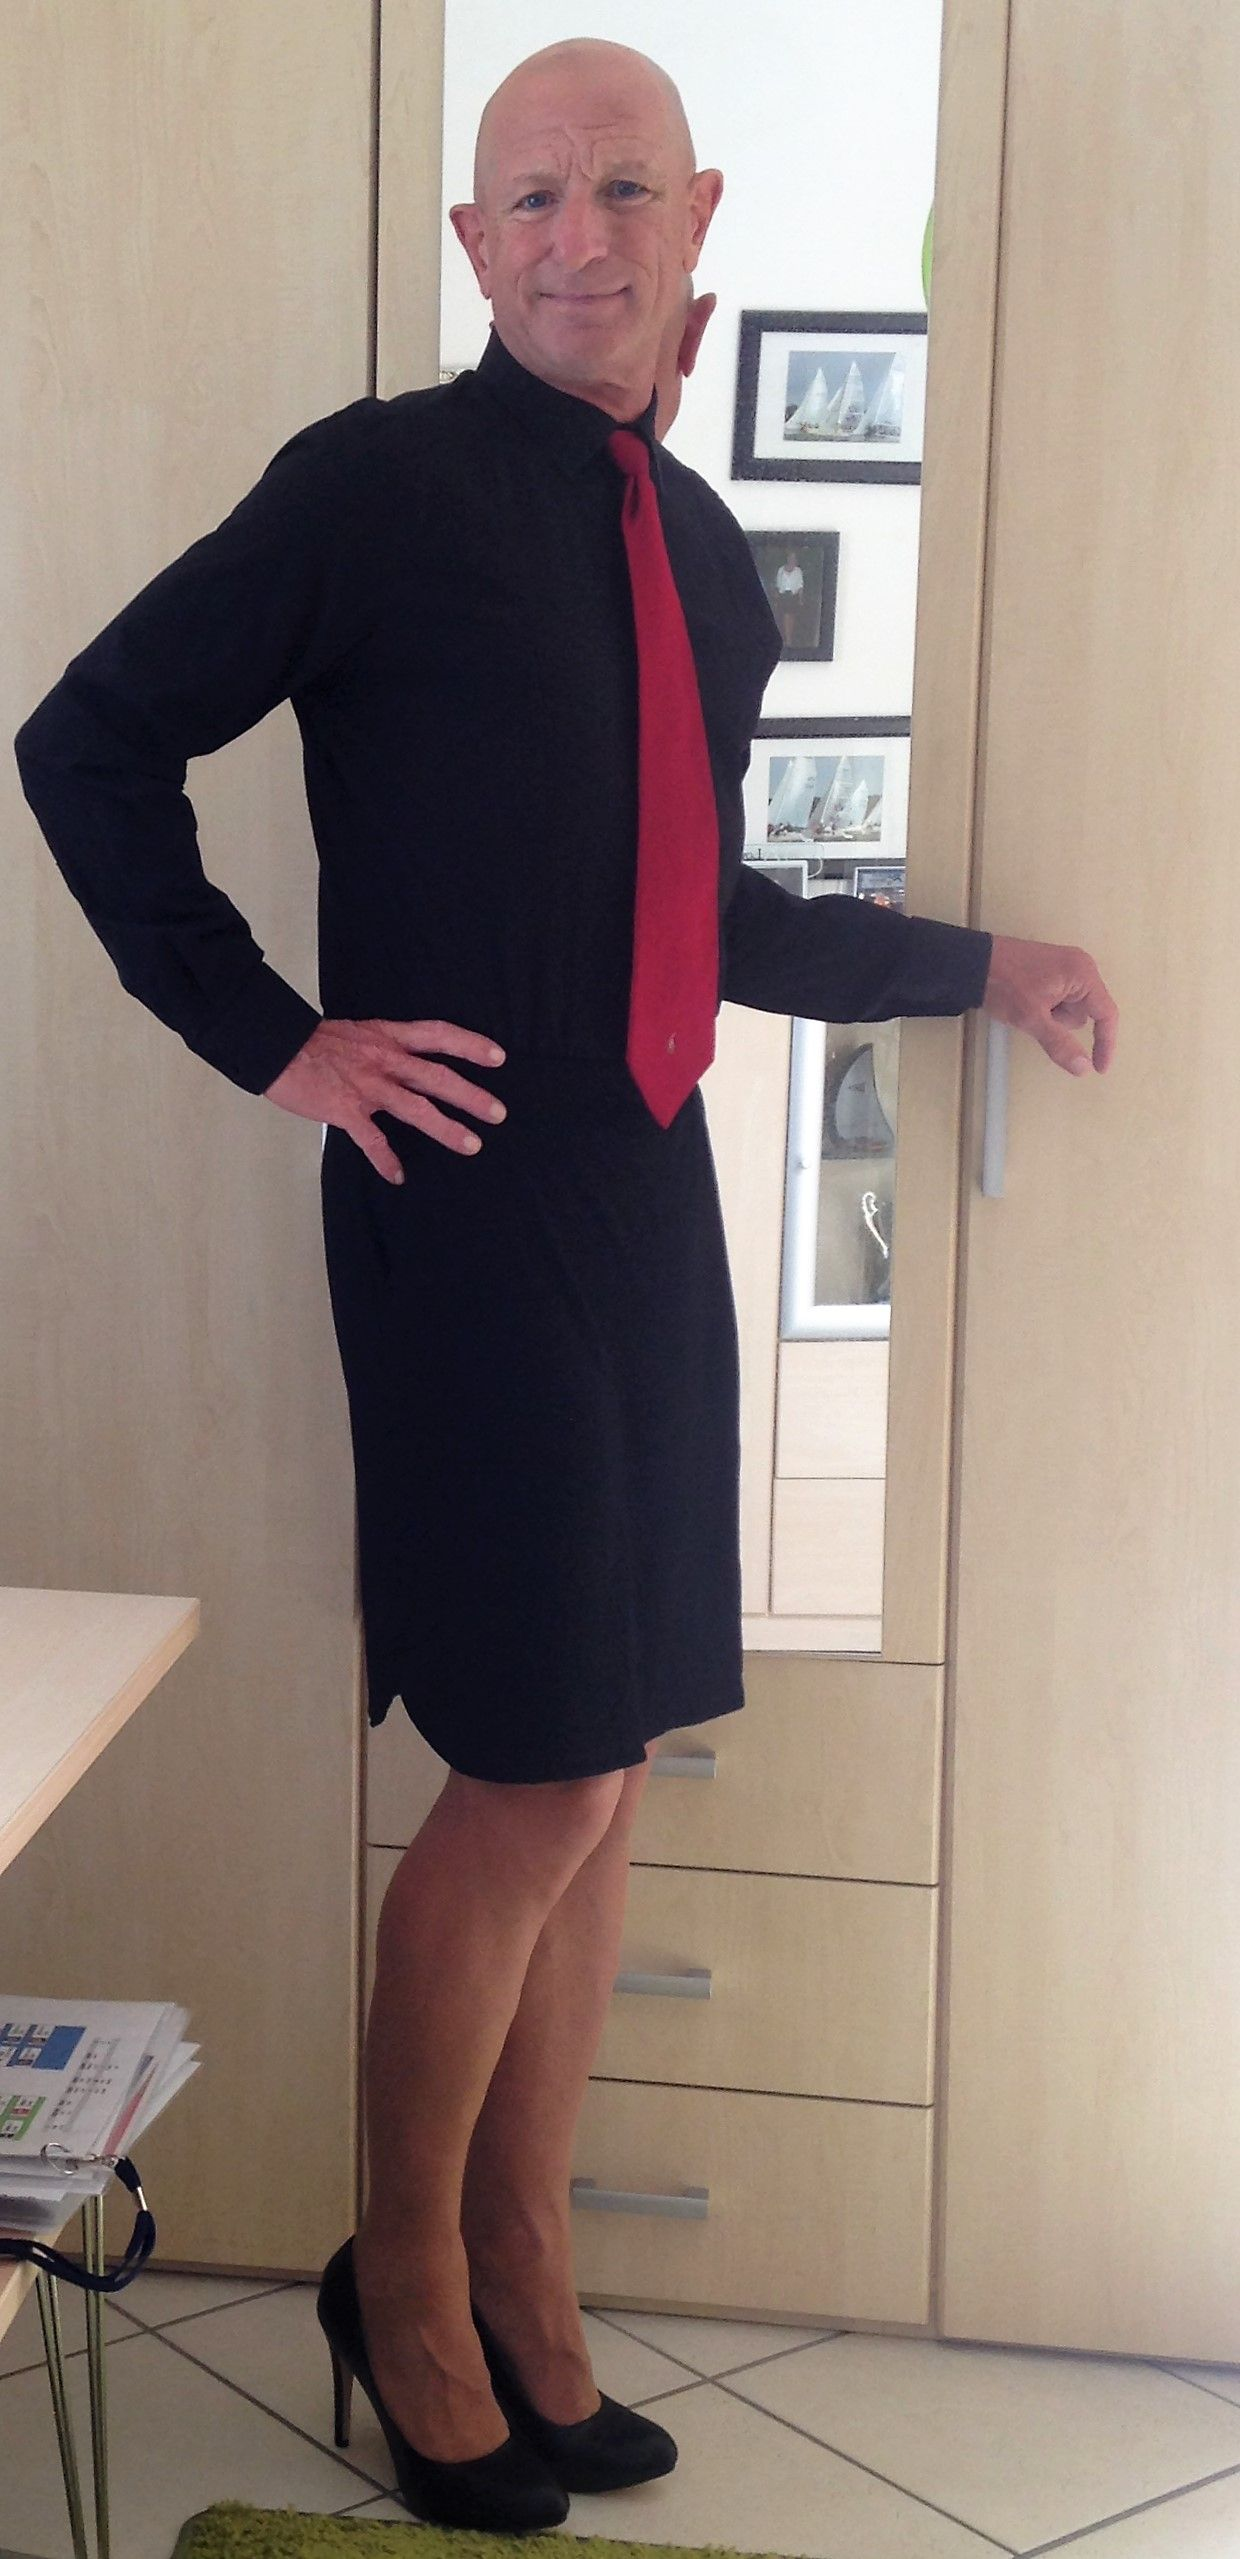 Man Wearing Black Skirt And Shirt With A Red Tie Of Course